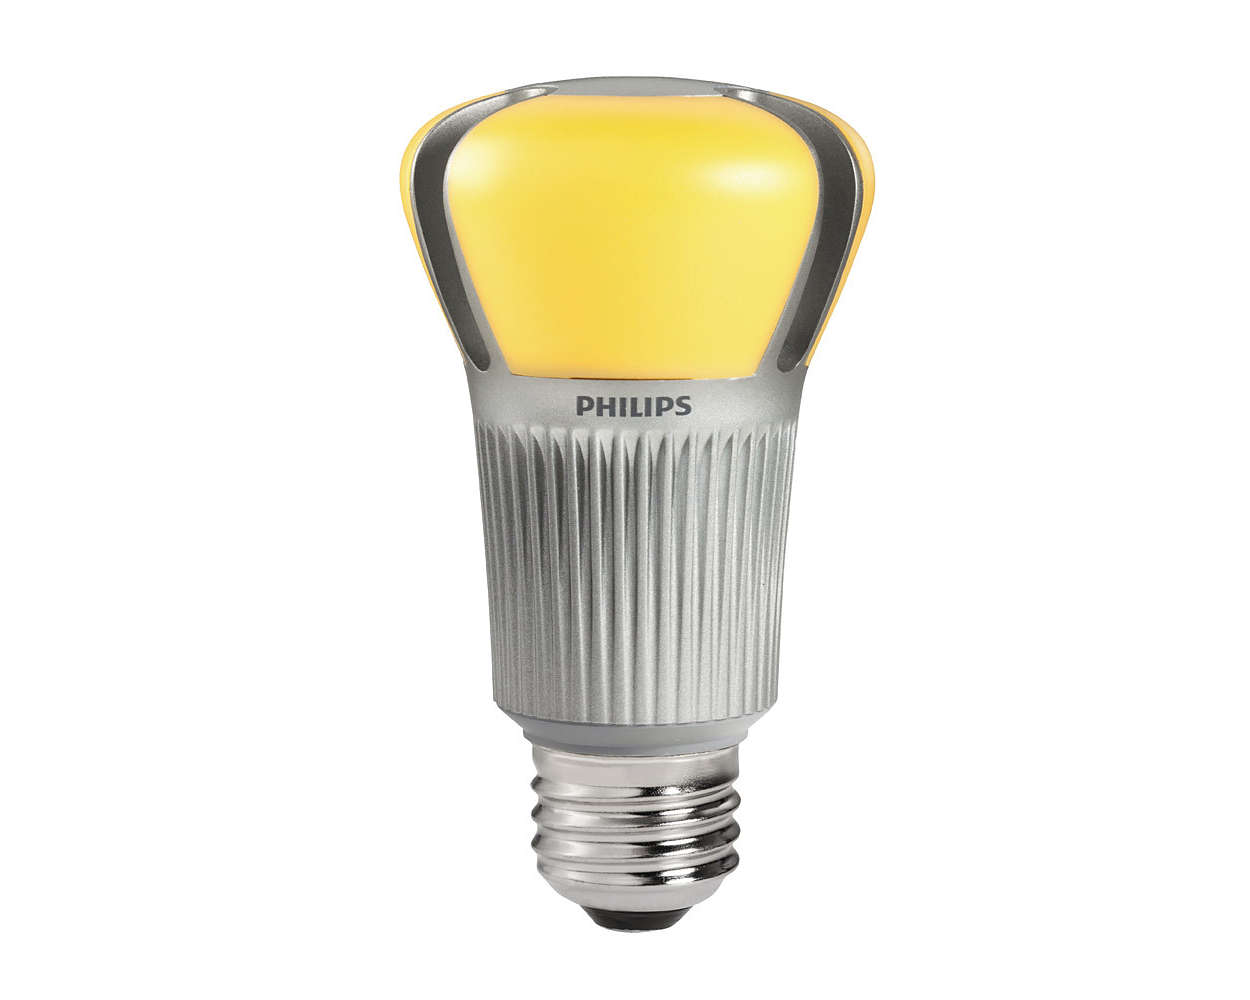 Ambientled dimmable a19 bulb philips lighting Light bulb lamps